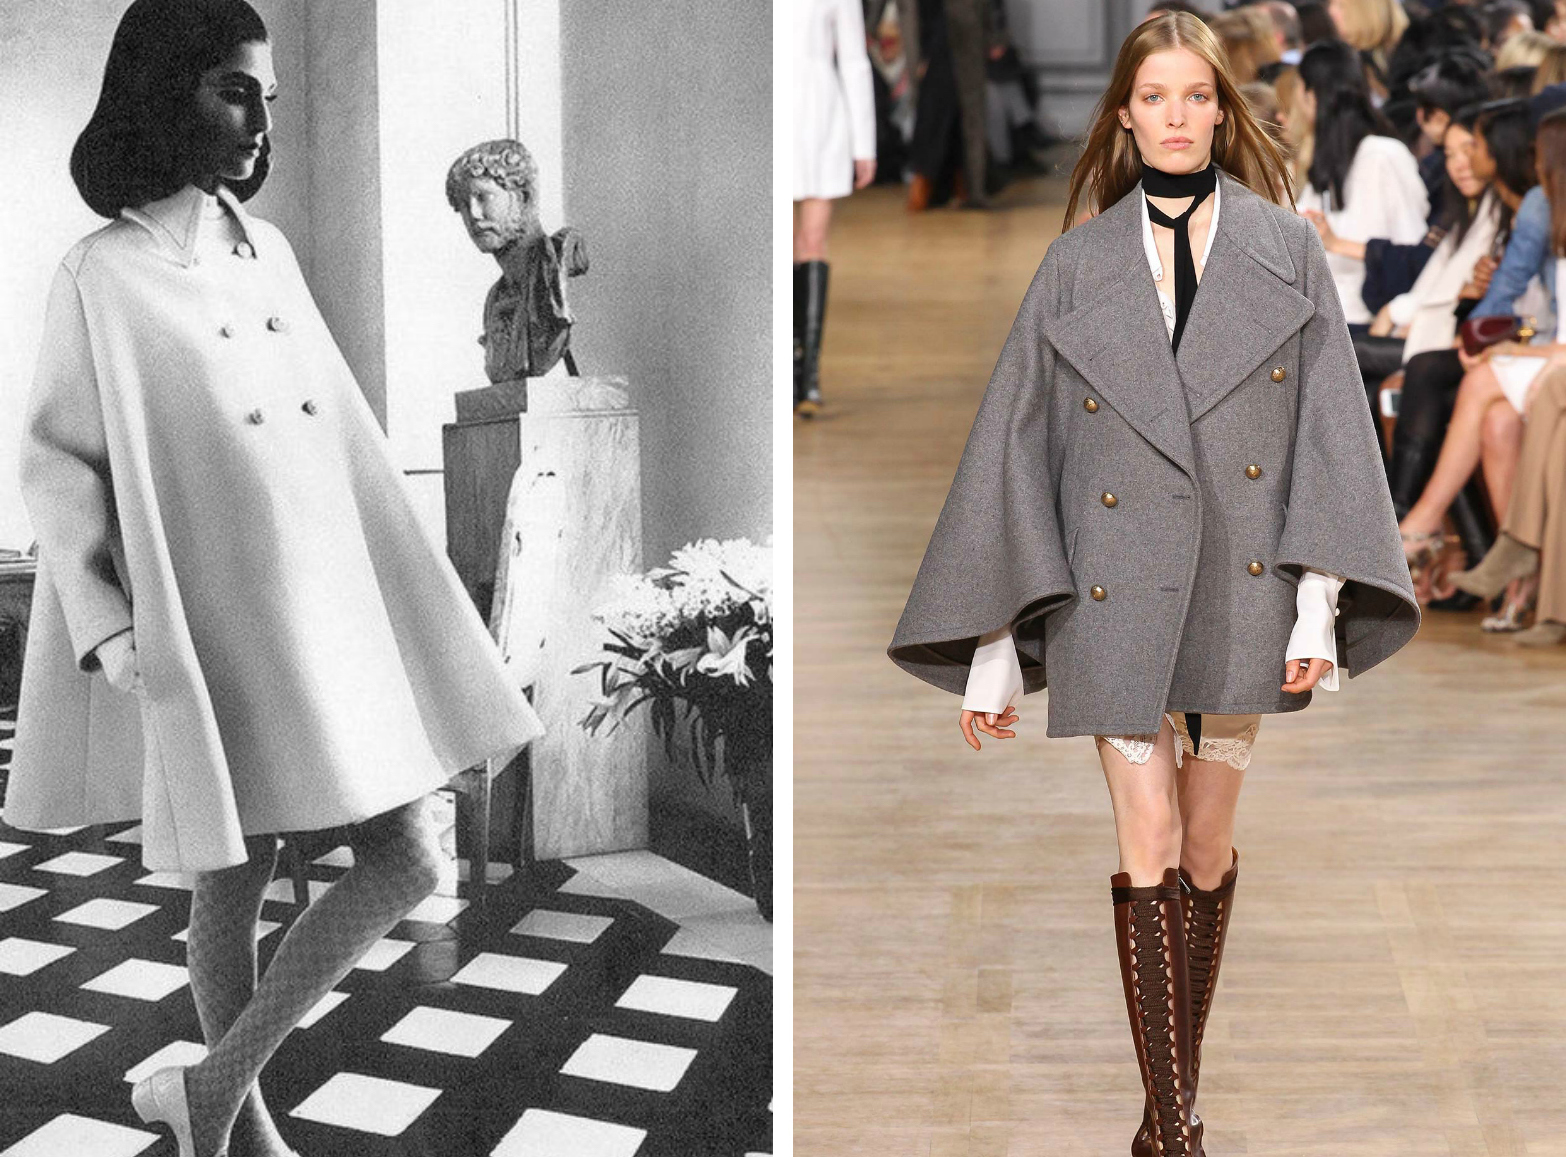 From left to right: Late 1960s cape coat, and the Chloe collection at Paris Fashion Week, Fall 2015.